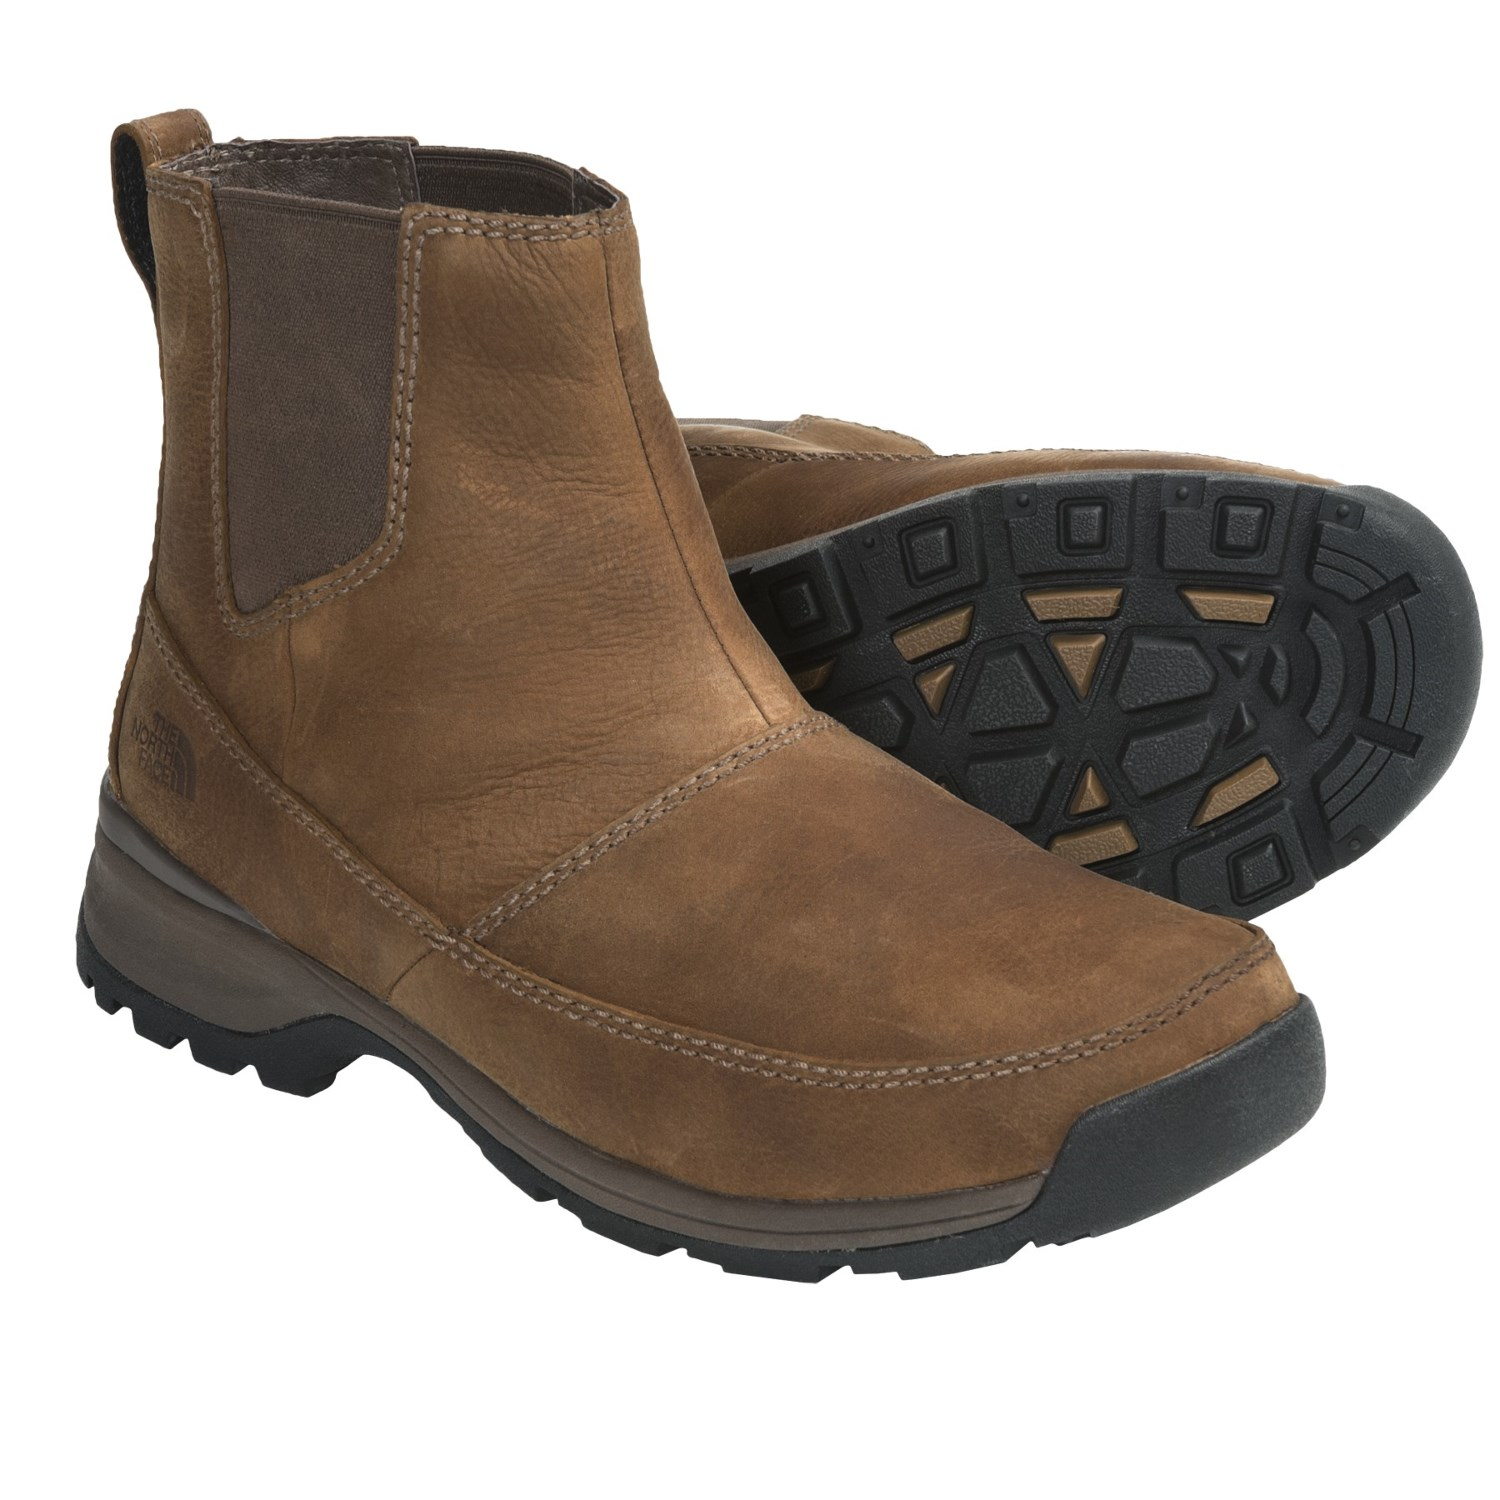 the ketchum pull on boots waterproof